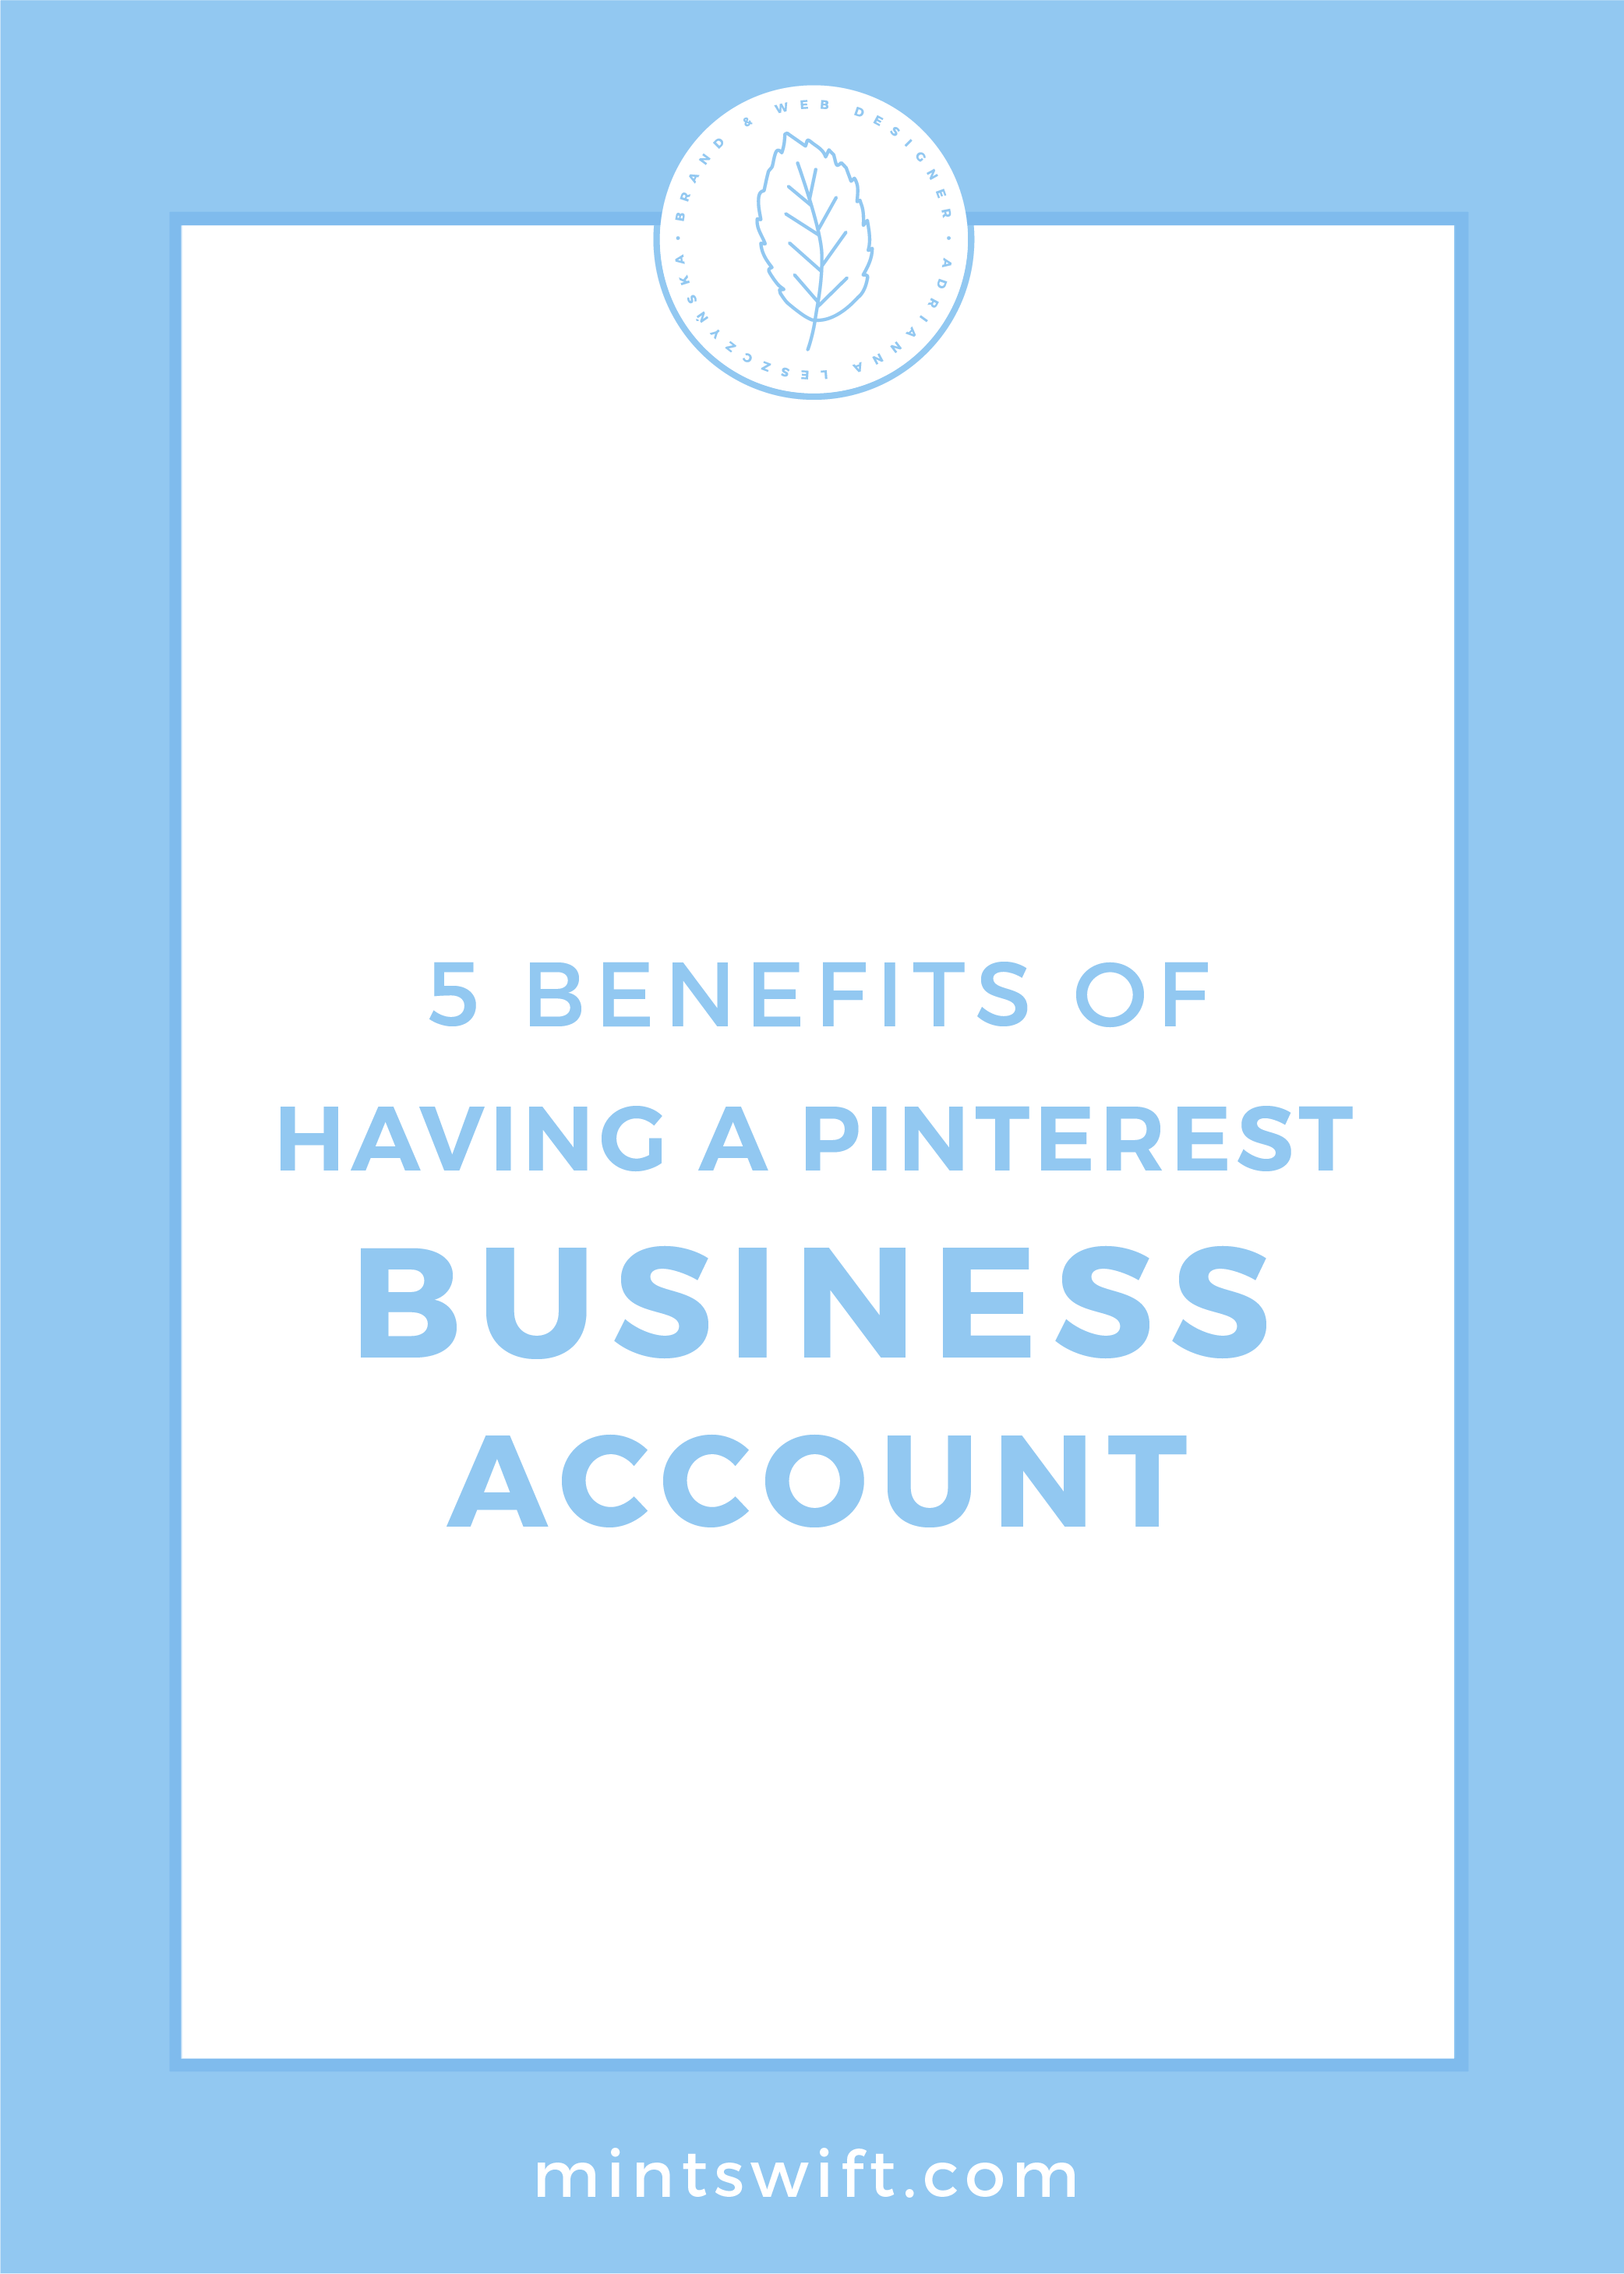 5 Benefits of Having a Pinterest Business Account by MintSwift